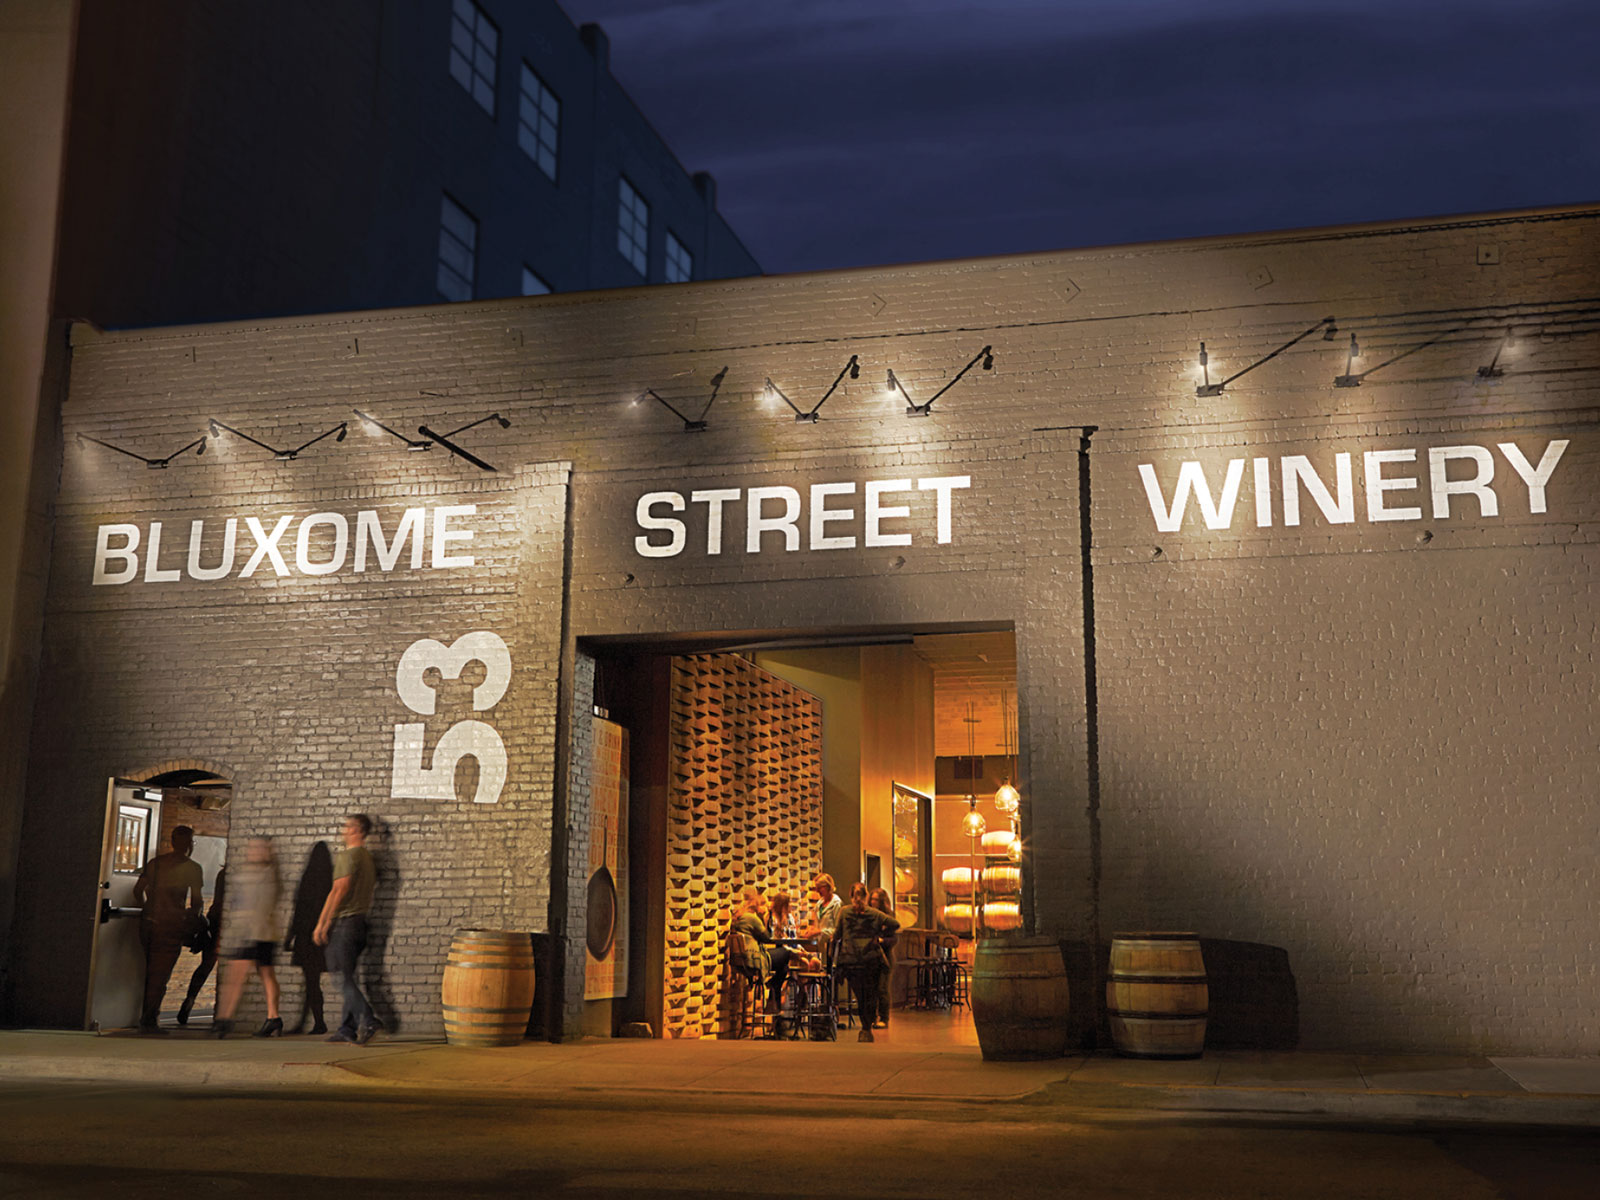 Bluxome Street Winery